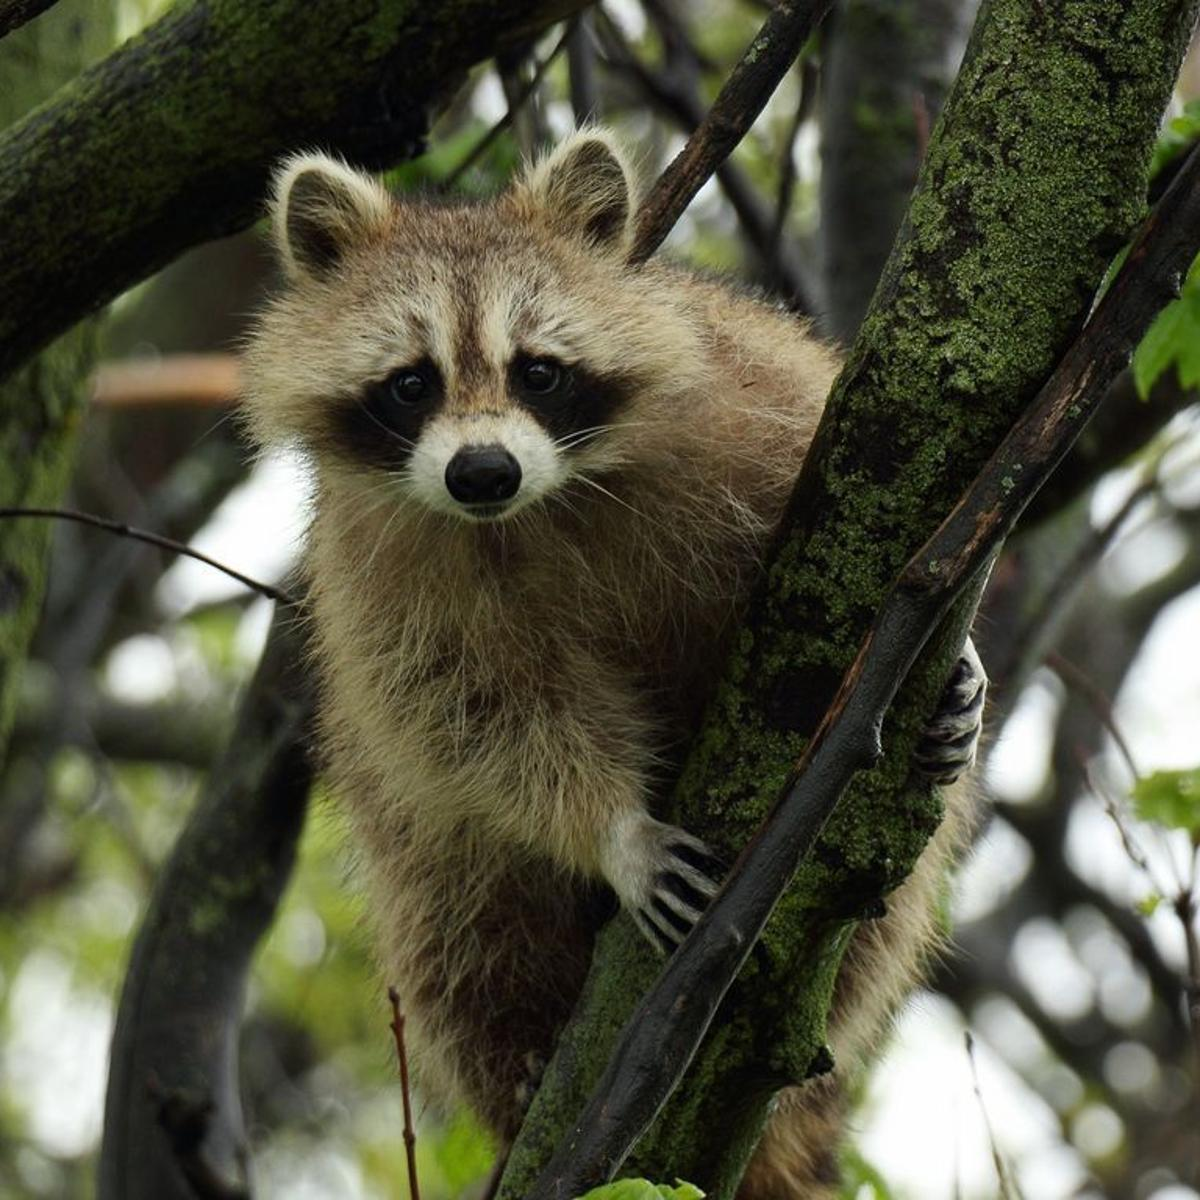 It's winter, so watch out for falling raccoons | Pets ... on raccoon in bedroom, raccoon in bed, raccoon in kitchen, raccoon in attic, raccoon in garage, raccoon in paint, raccoon in space, raccoon in room, raccoon in box, raccoon in office, raccoon in sink, raccoon in building, raccoon in water, raccoon in bathroom, raccoon in log, raccoon home, raccoon in bath, raccoon in wall, raccoon in the floor, raccoon in chair,